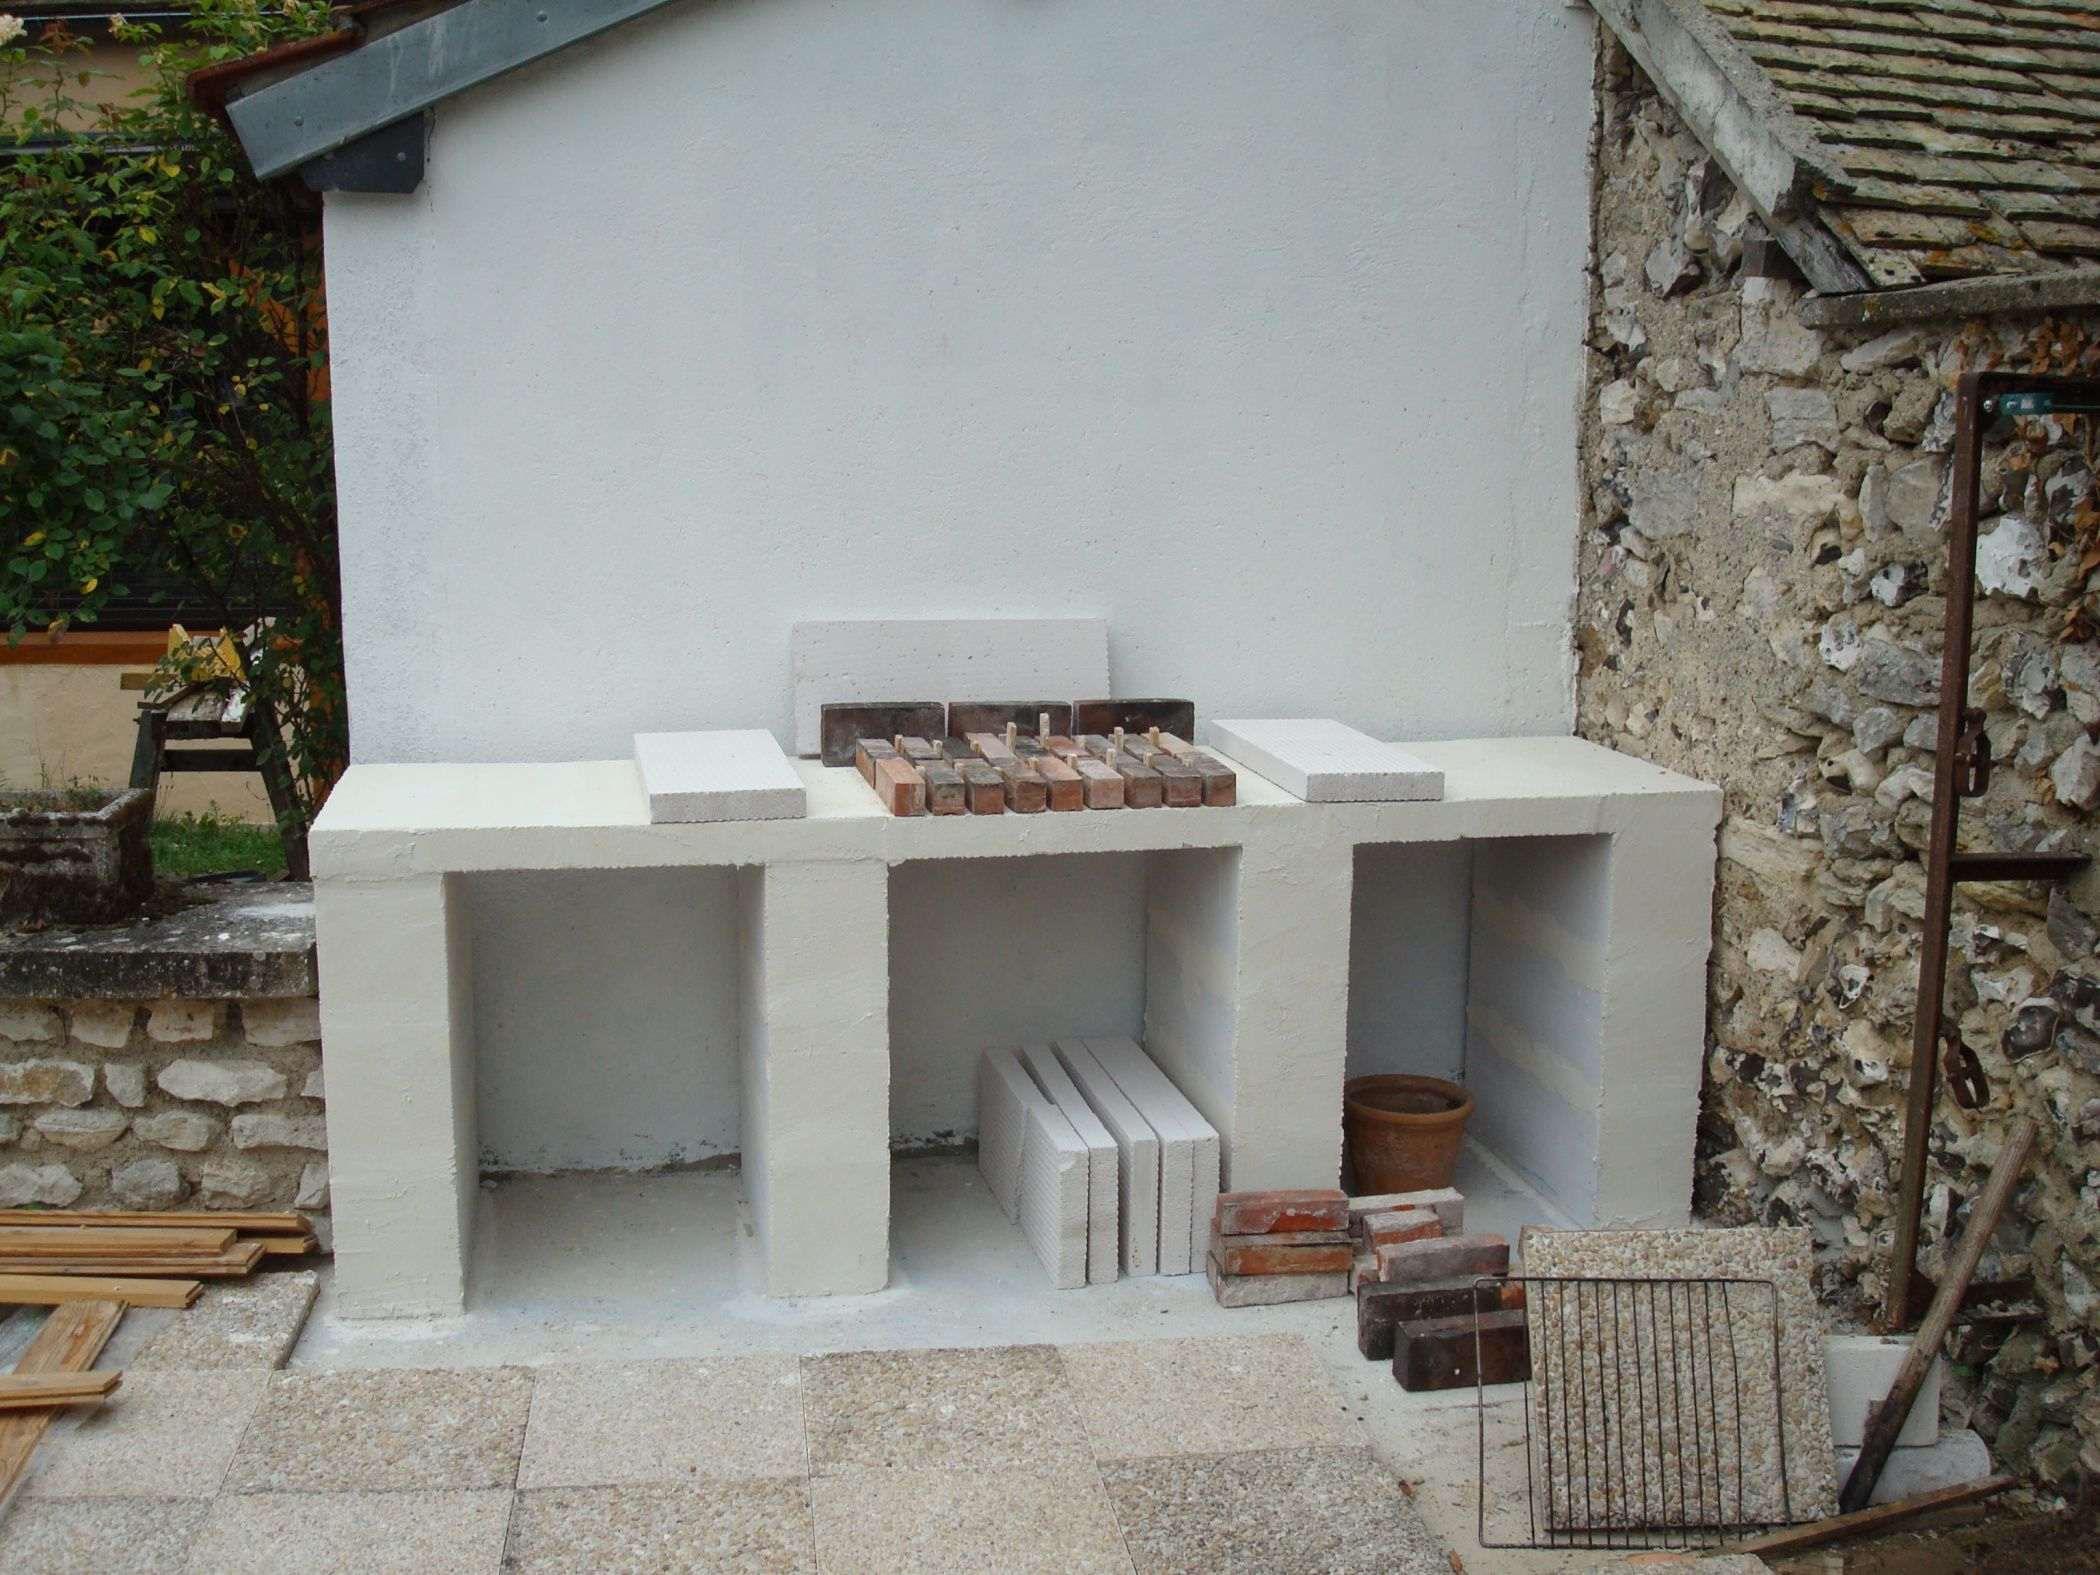 Amenagement Terrasse Barbecue Construction D 39un Barbecue Sur Mesure Barbecue